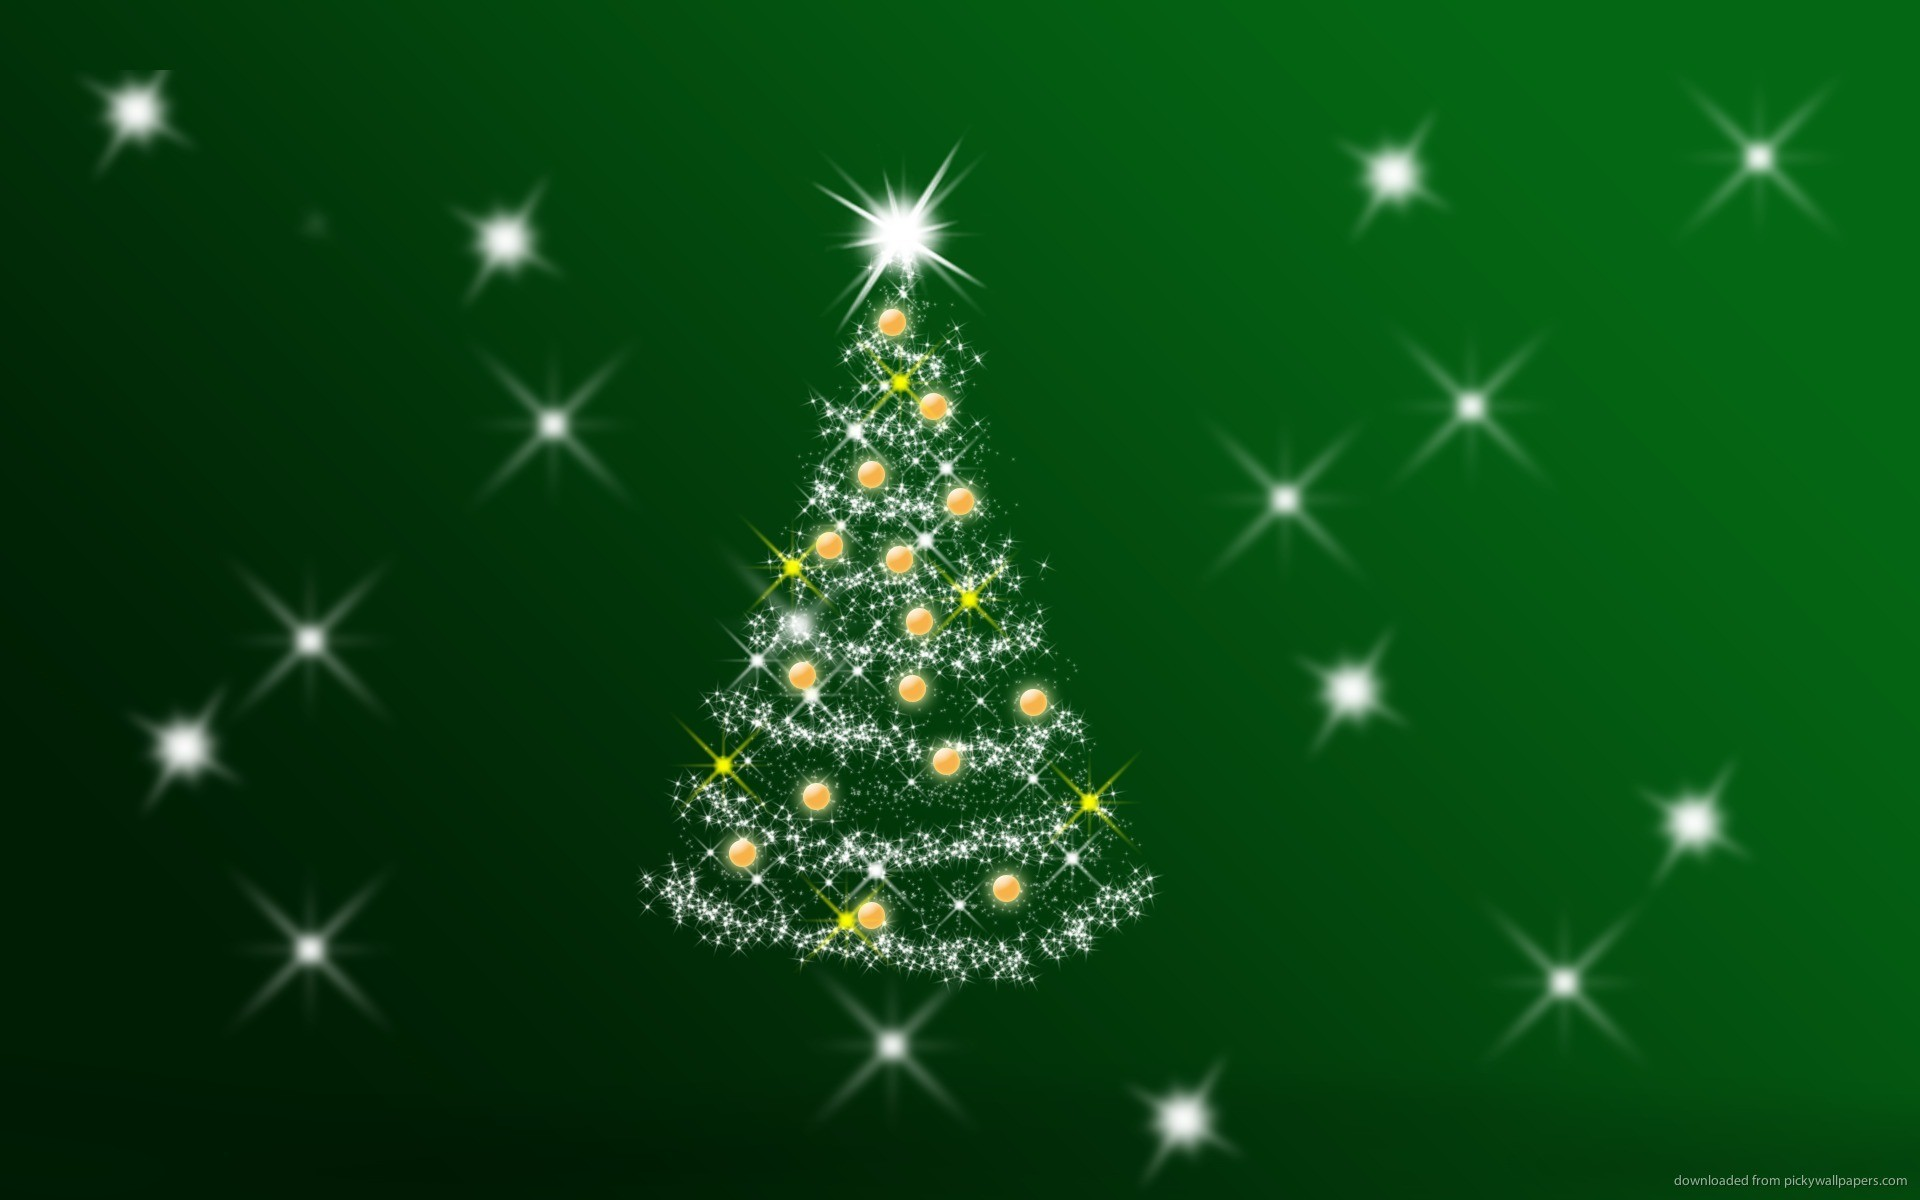 wallpaper.pickywallpapers.com/1920×1200/green christmas background